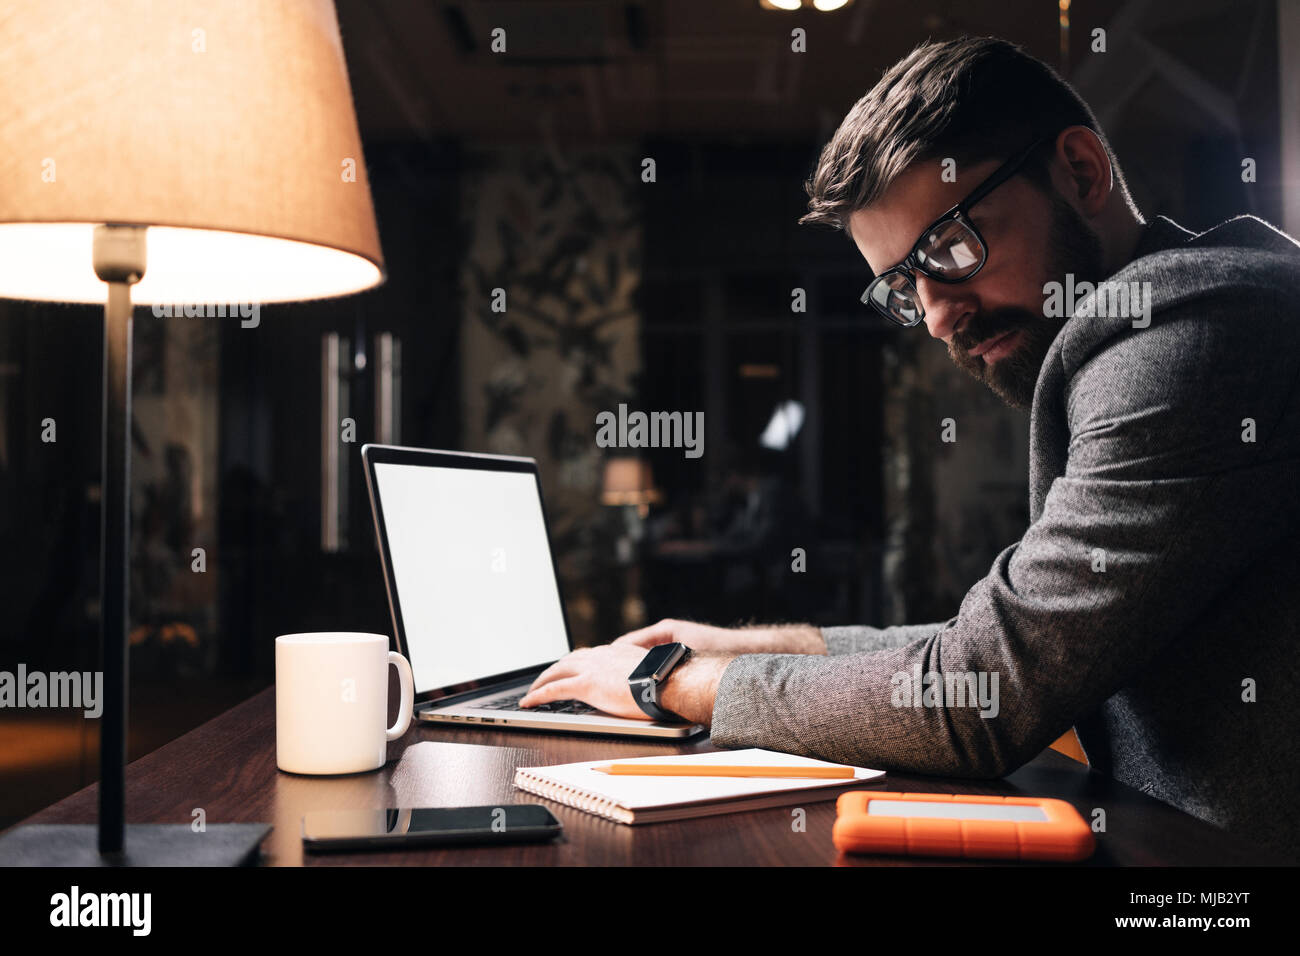 Young project manager typing text on laptop at night office. Bearded business man working on new startup in loft space. Coworker concept. Flare effect - Stock Image